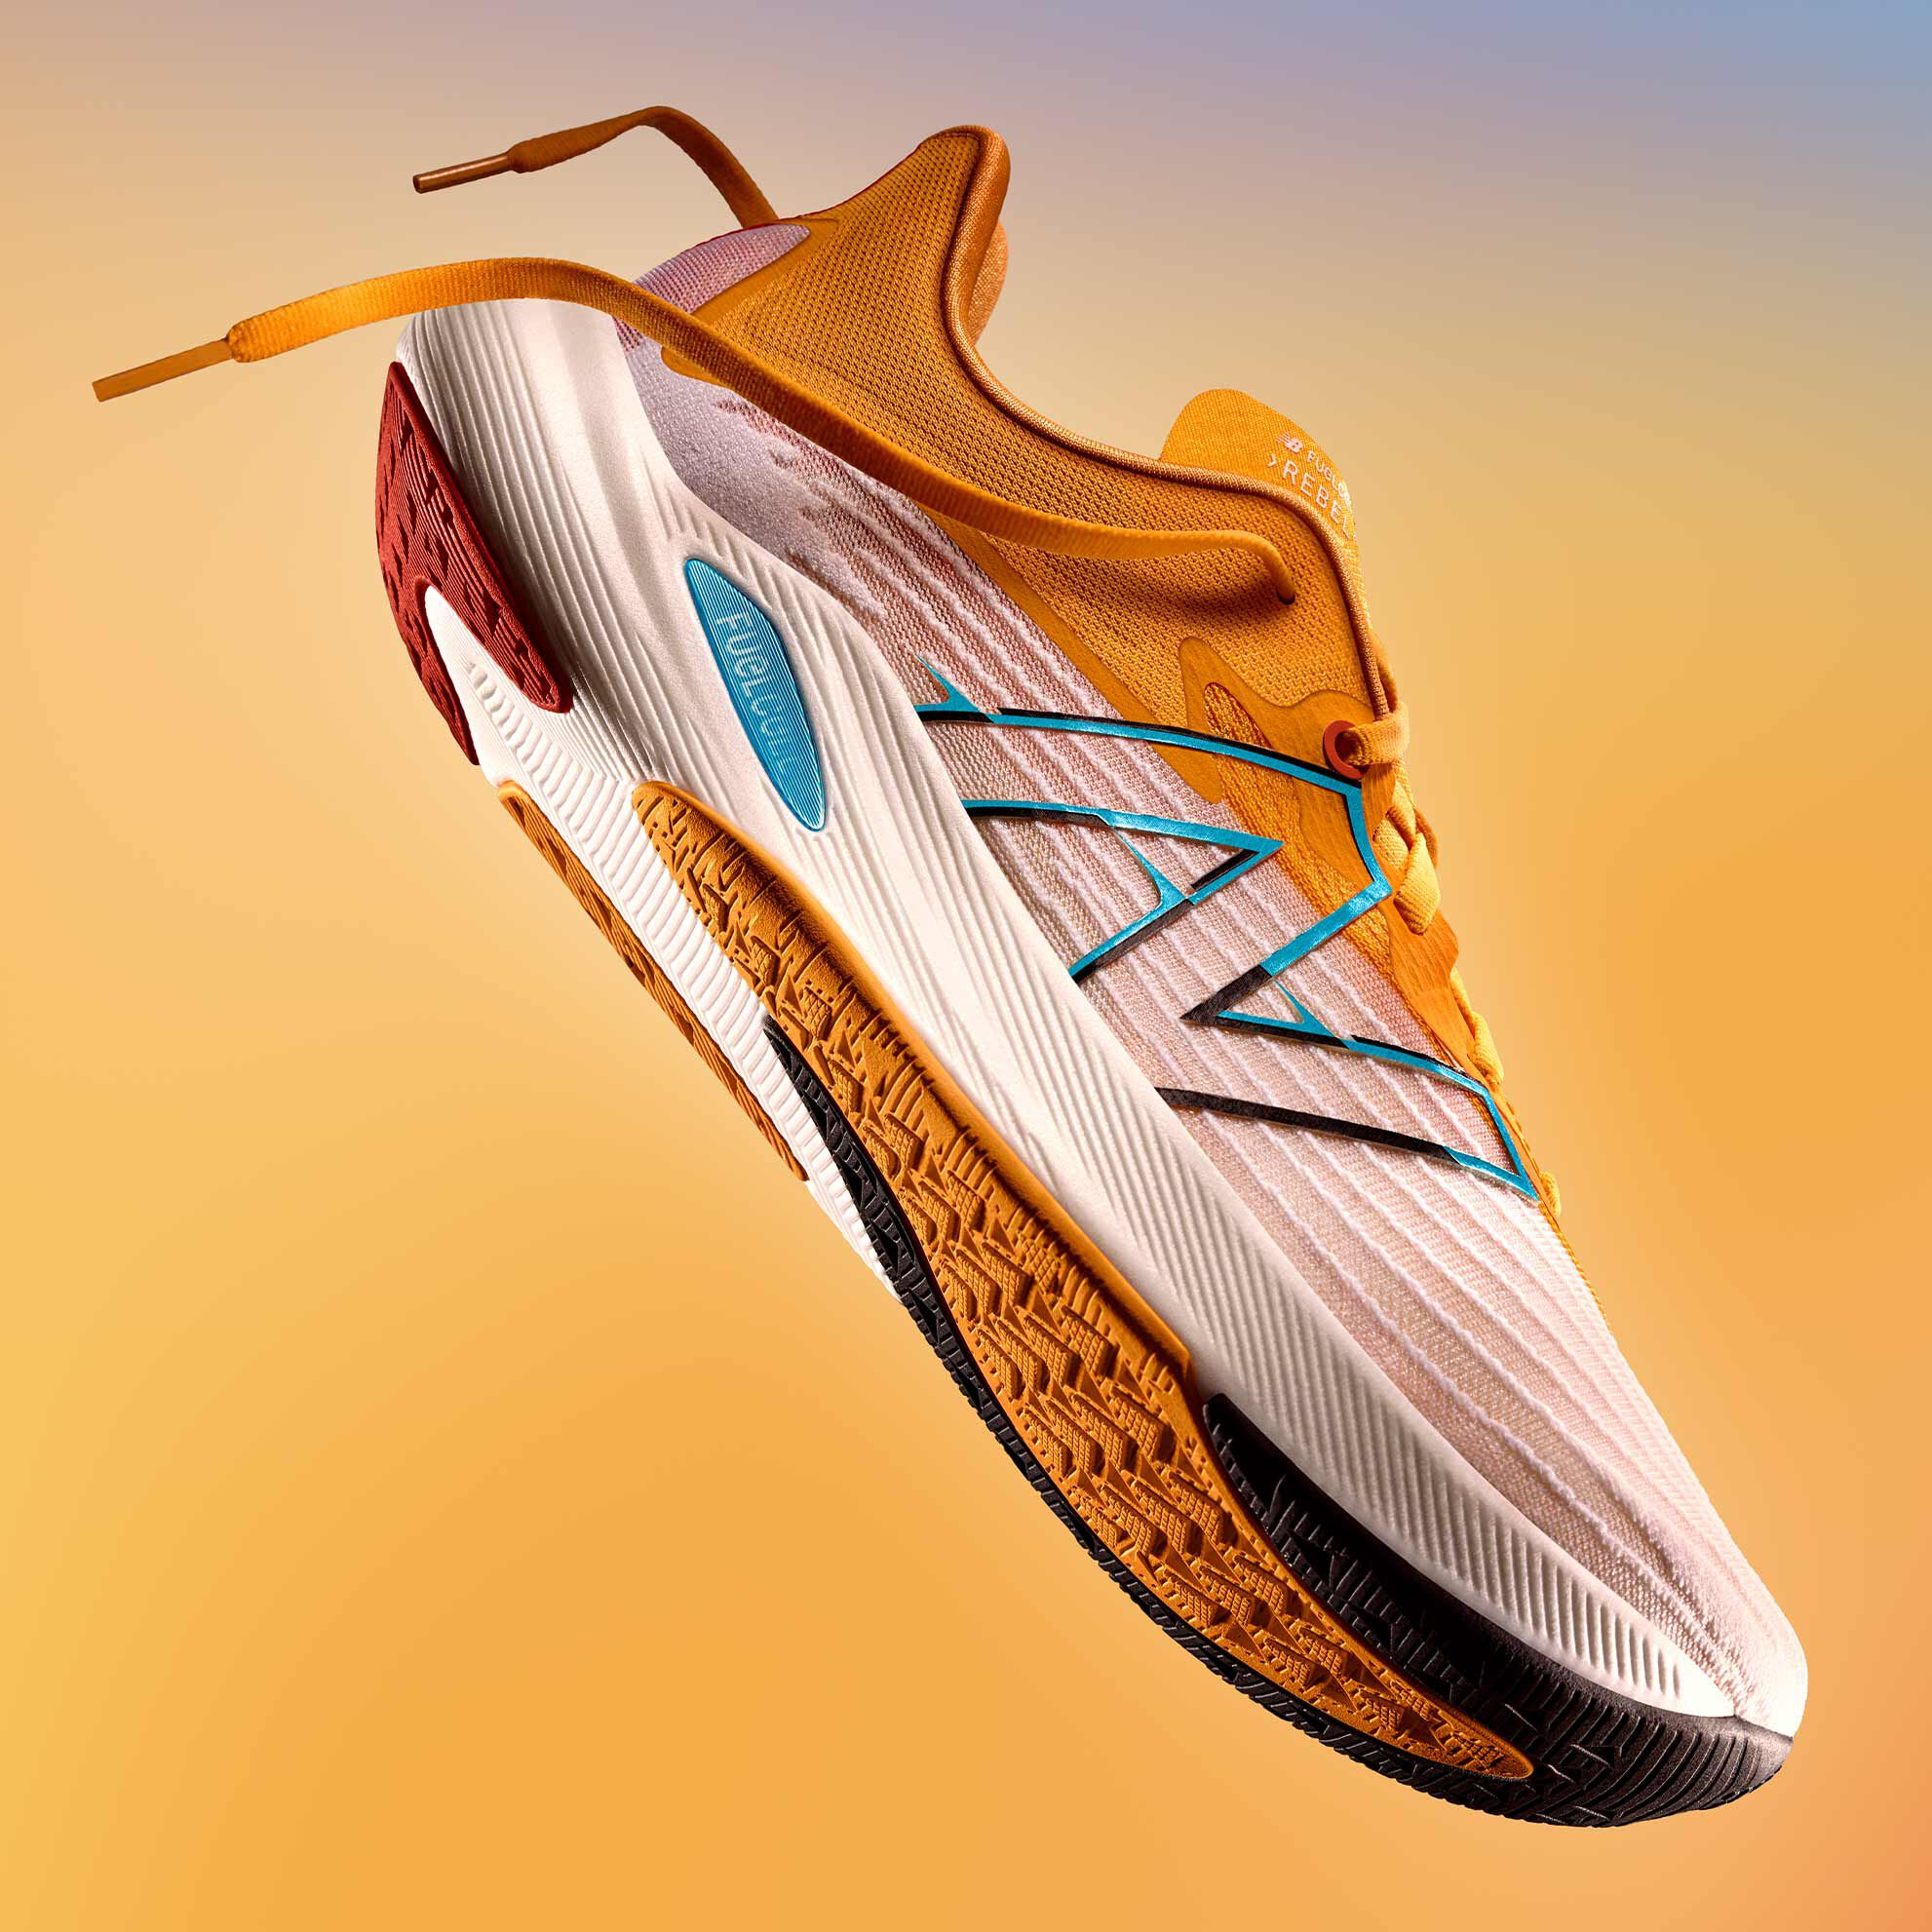 A dramatically lit men's orange and white NB FuelCell Rebel v2 running shoe on a warm gradient background